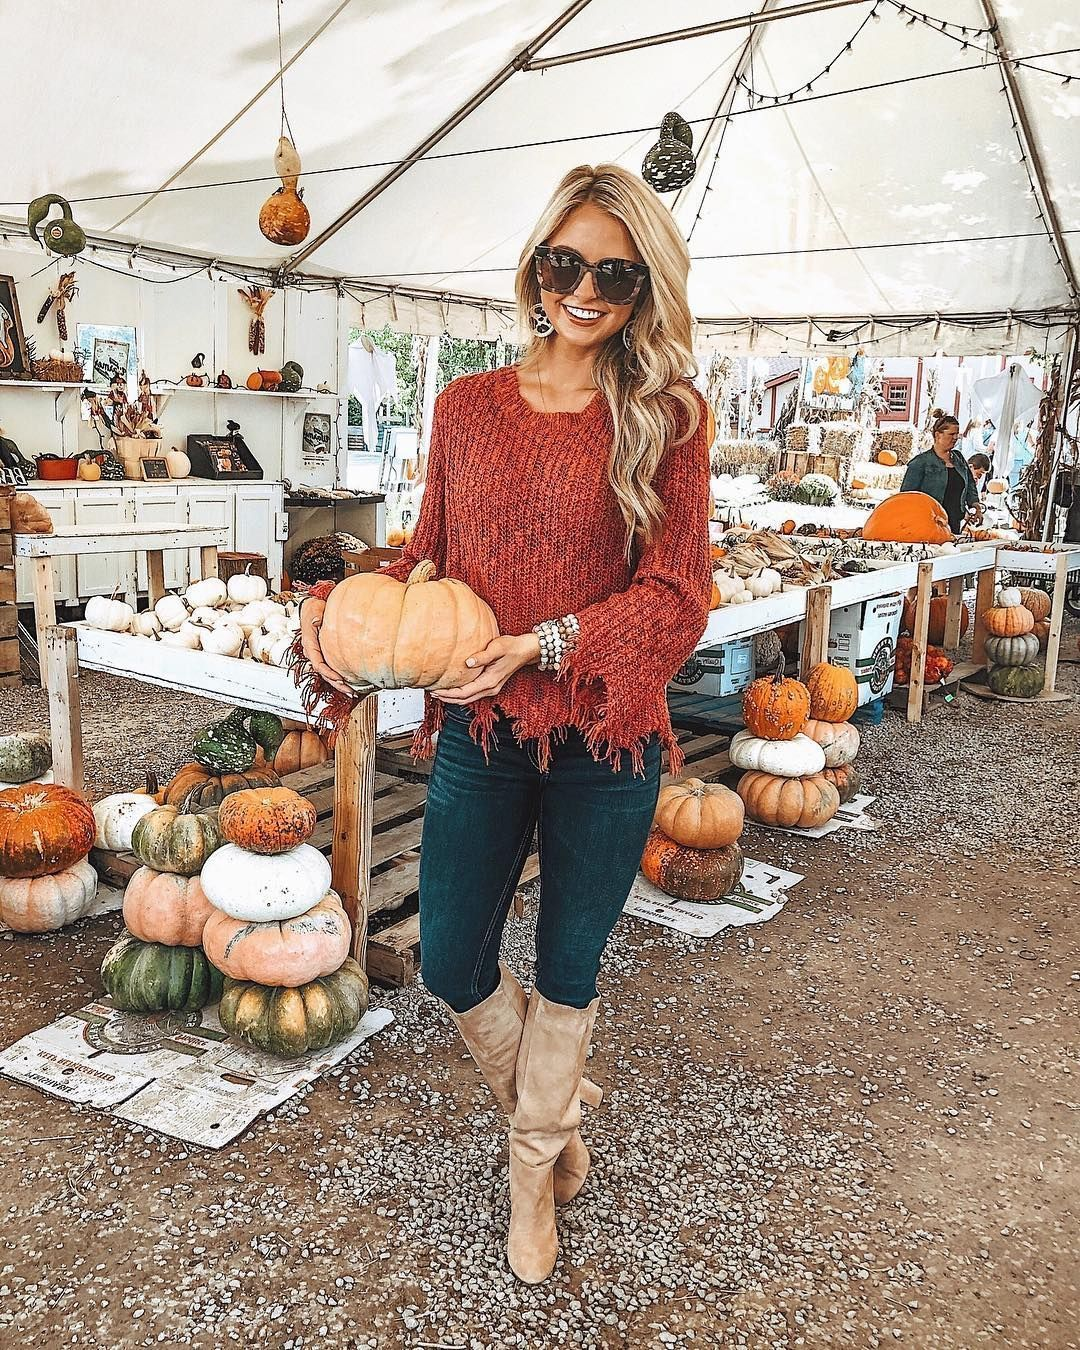 "Shea Leigh Mills on Instagram: ""Officially add me to the list of girls posting pumpkin patch photos in an outfit that is not at all suitable for picking up & carrying dirt…"" #pumpkinpatchoutfit Shea Leigh Mills on Instagram: ""Officially add me to the list of girls posting pumpkin patch photos in an outfit that is not at all suitable for picking up & carrying dirt…"" #pumpkinpatchoutfit Shea Leigh Mills on Instagram: ""Officially add me to the list of girls posting pumpkin patch photo #pumpkinpatchoutfitwomen"